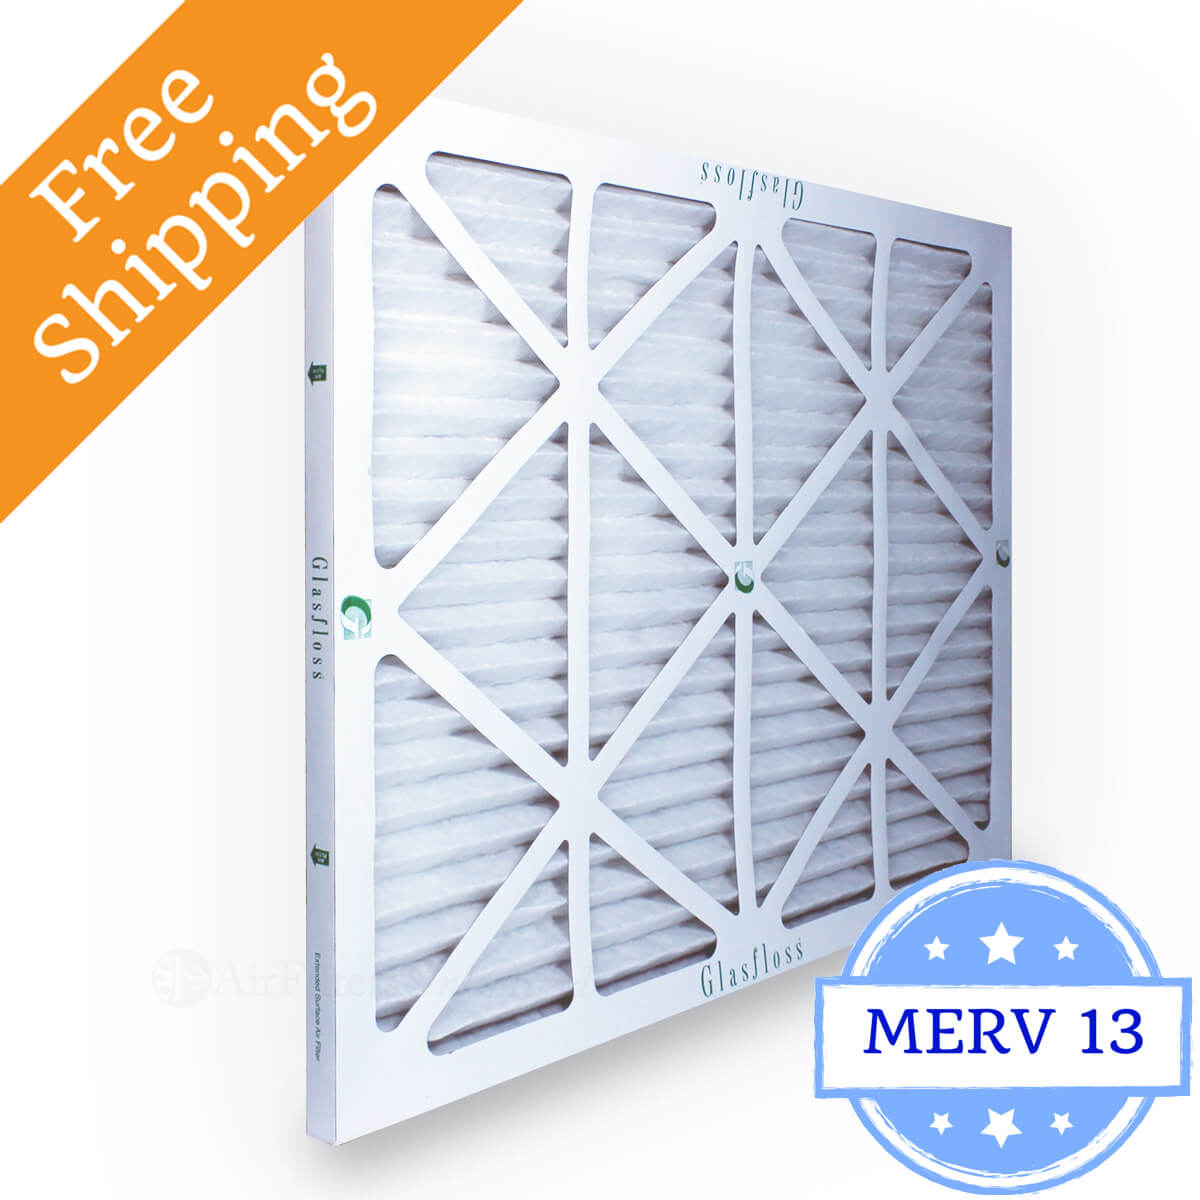 Glasfloss 18x25x1 Air Filter MR-13 Series